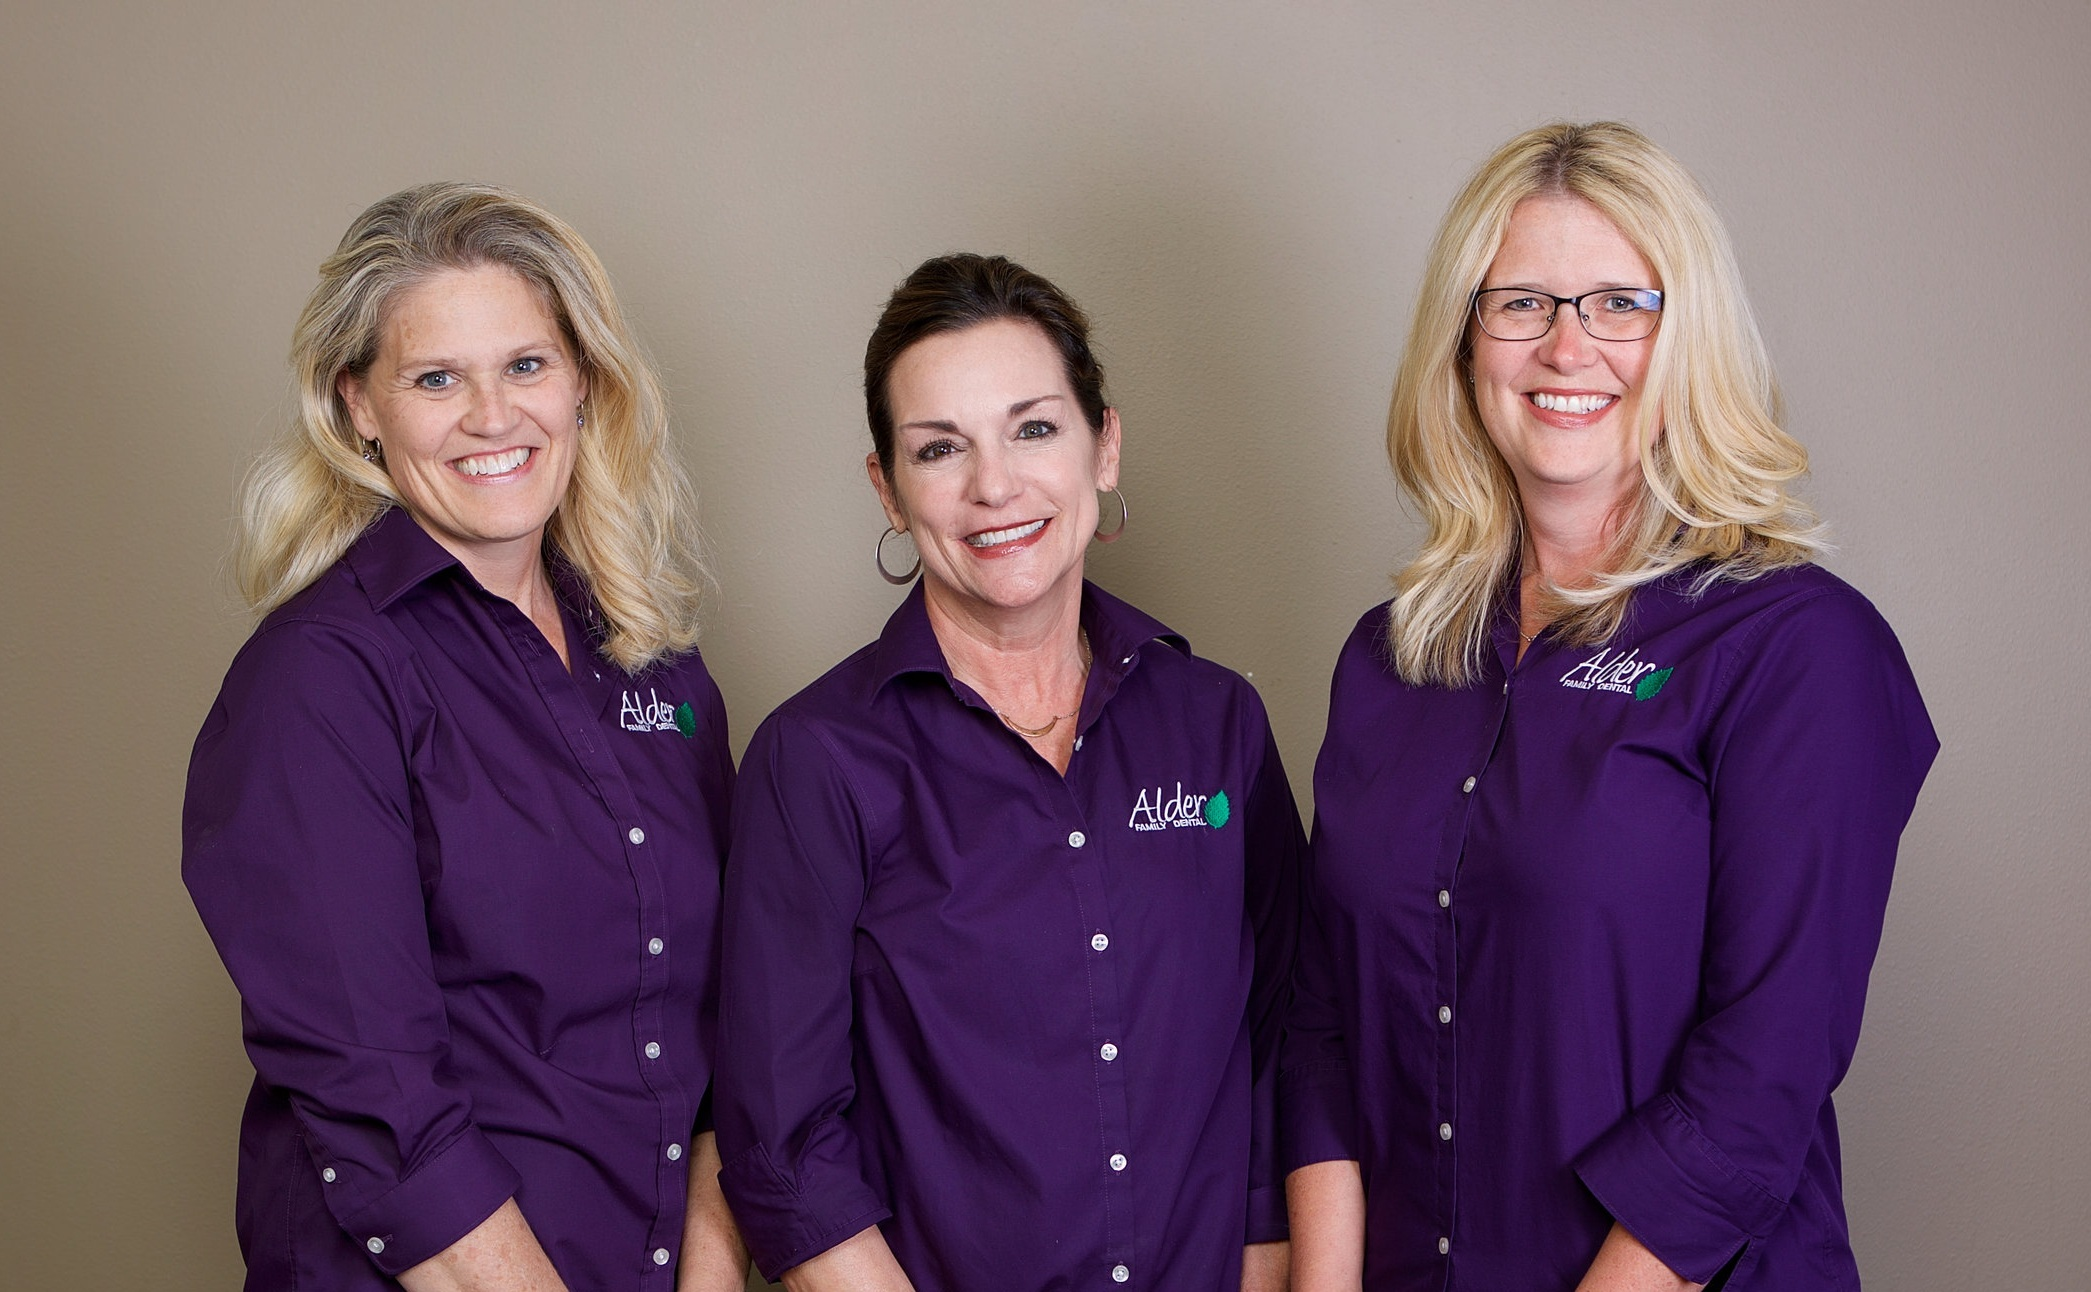 Business Team - Jani, Kelly, and Shannon do a wonderful job of assisting our patients in scheduling appointments, maximizing their dental benefits, and answering any questions that may arise.